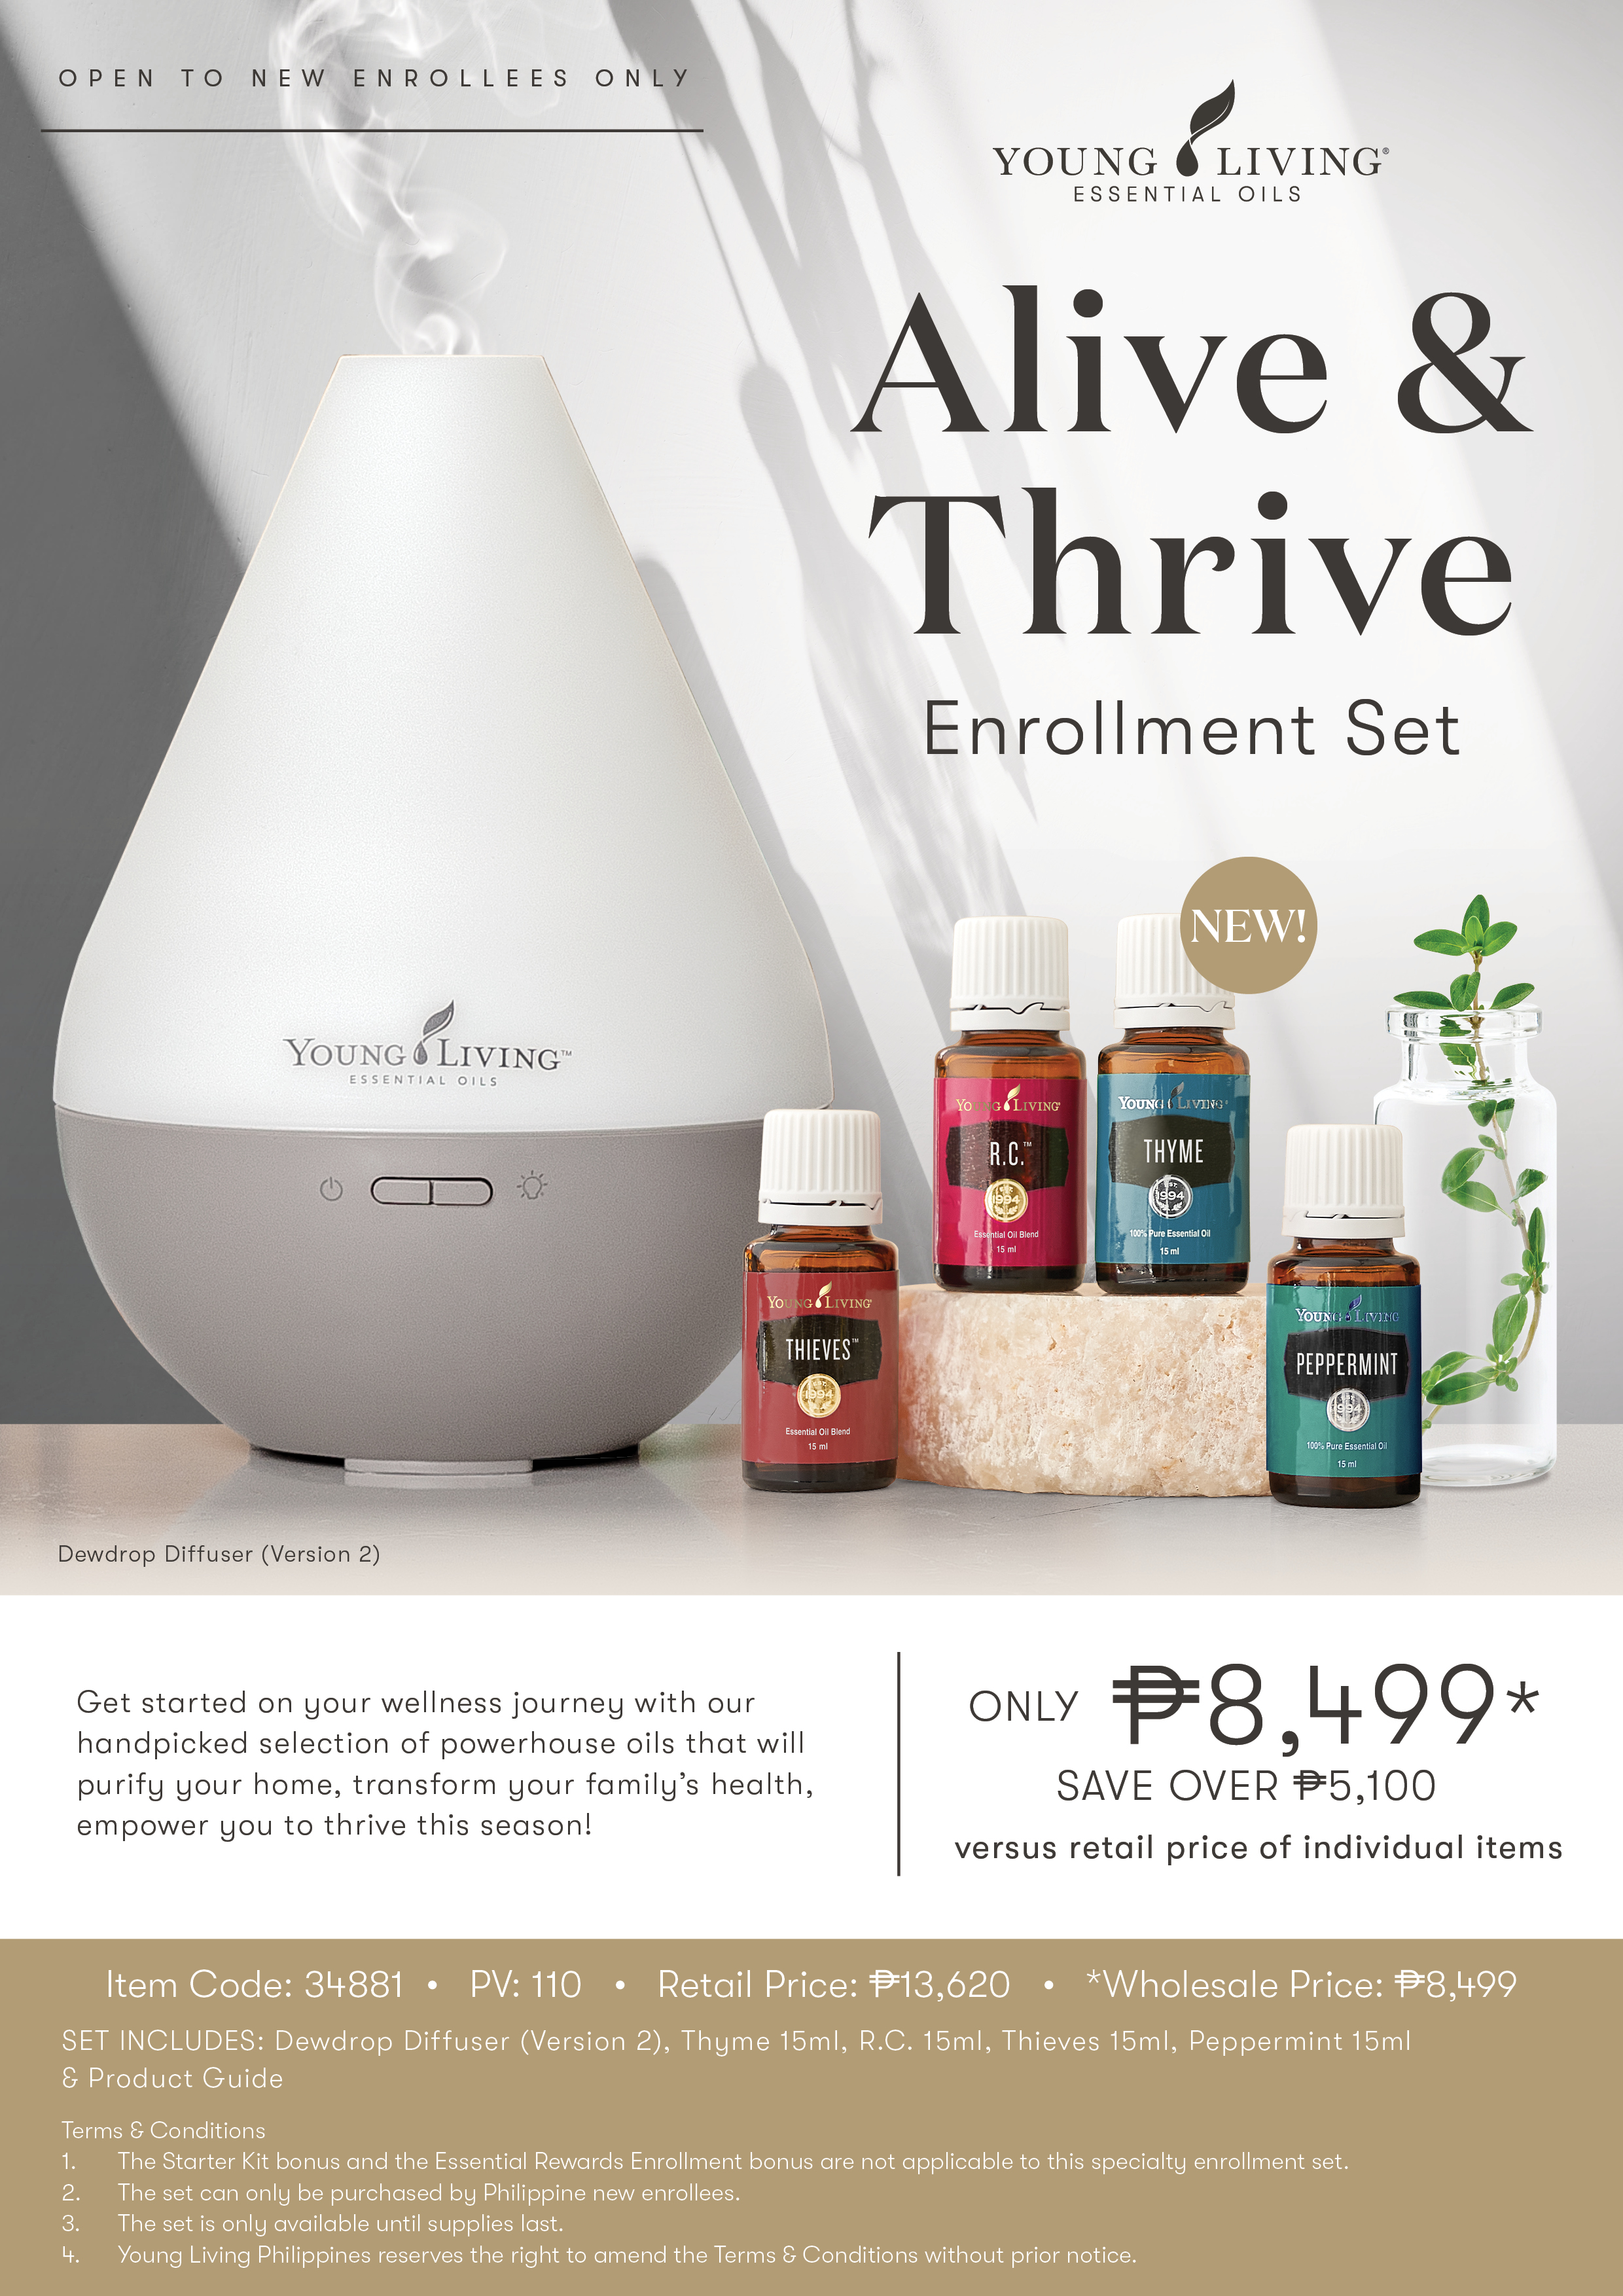 young living essential oils sign in